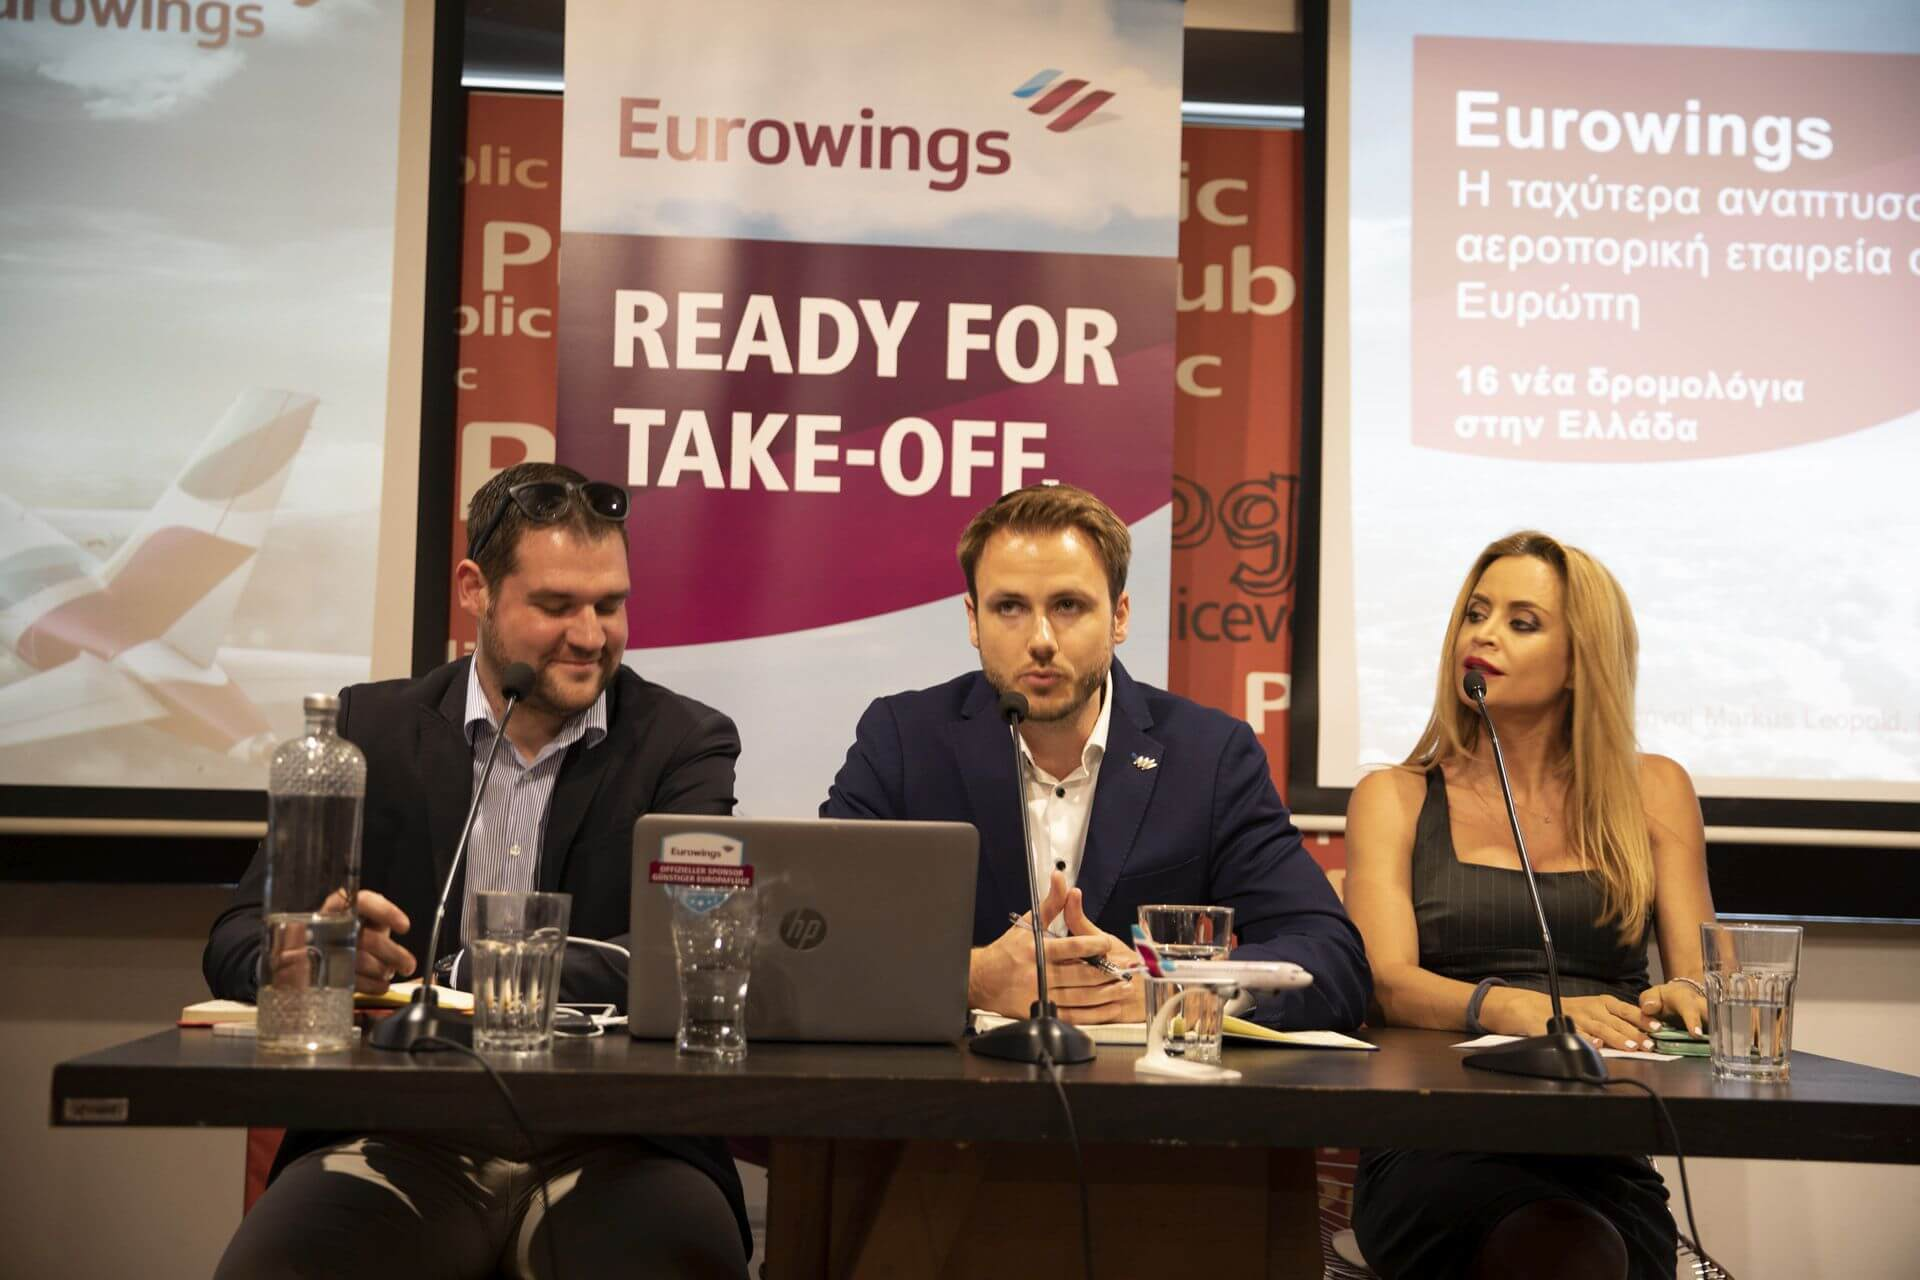 Αποτέλεσμα εικόνας για Eurowings launches 16 new routes to/from Greece this summer